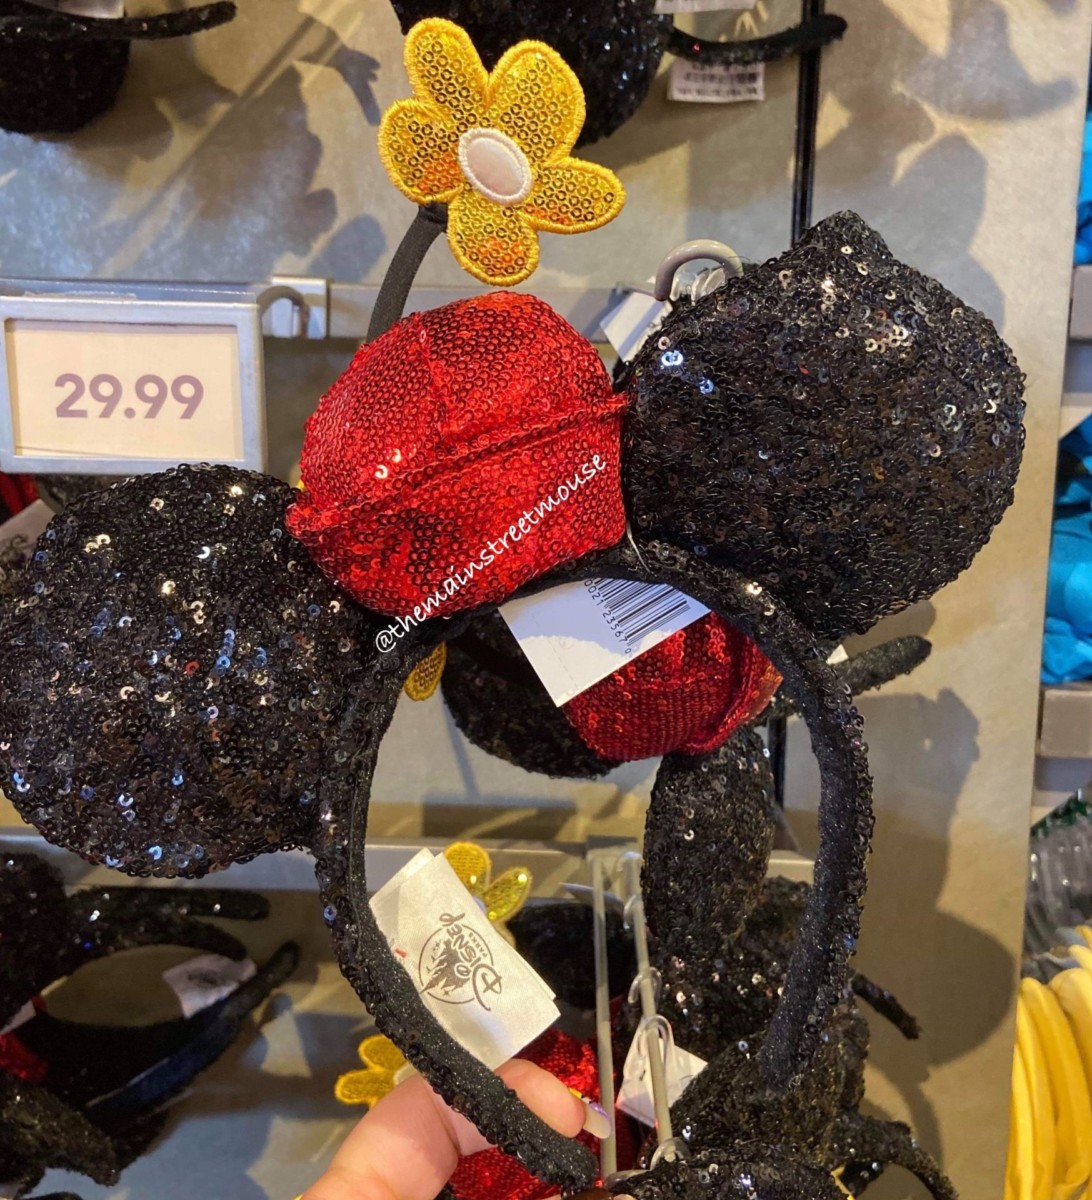 New Classic Minnie Mouse Ears and More! #disneystyle 1